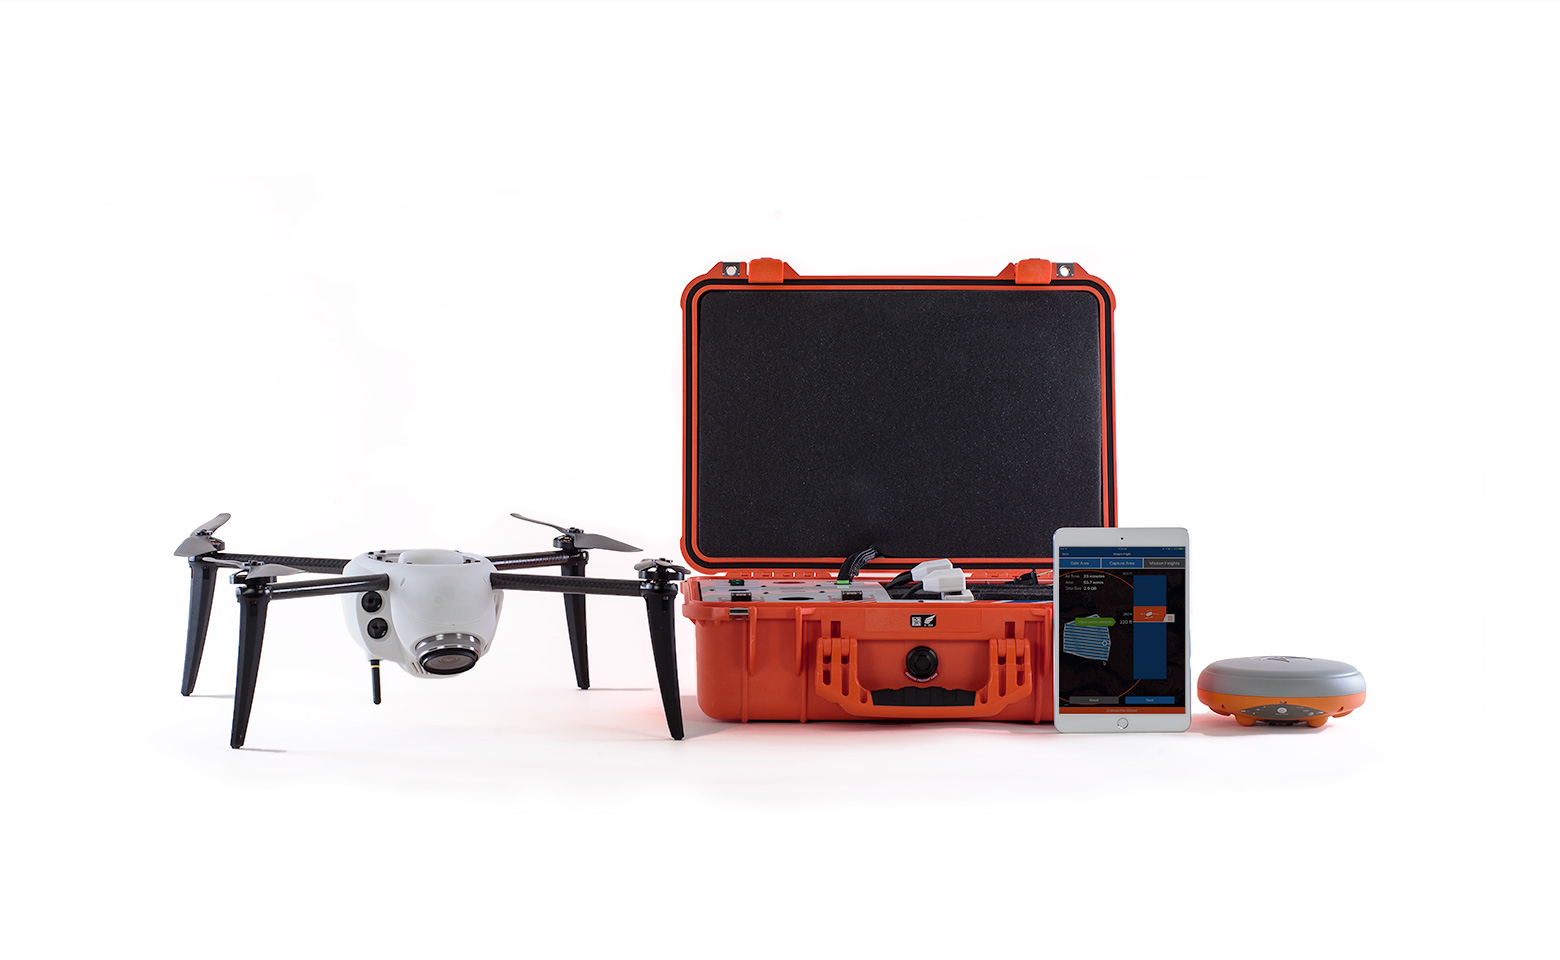 Kespry Drone 2s System